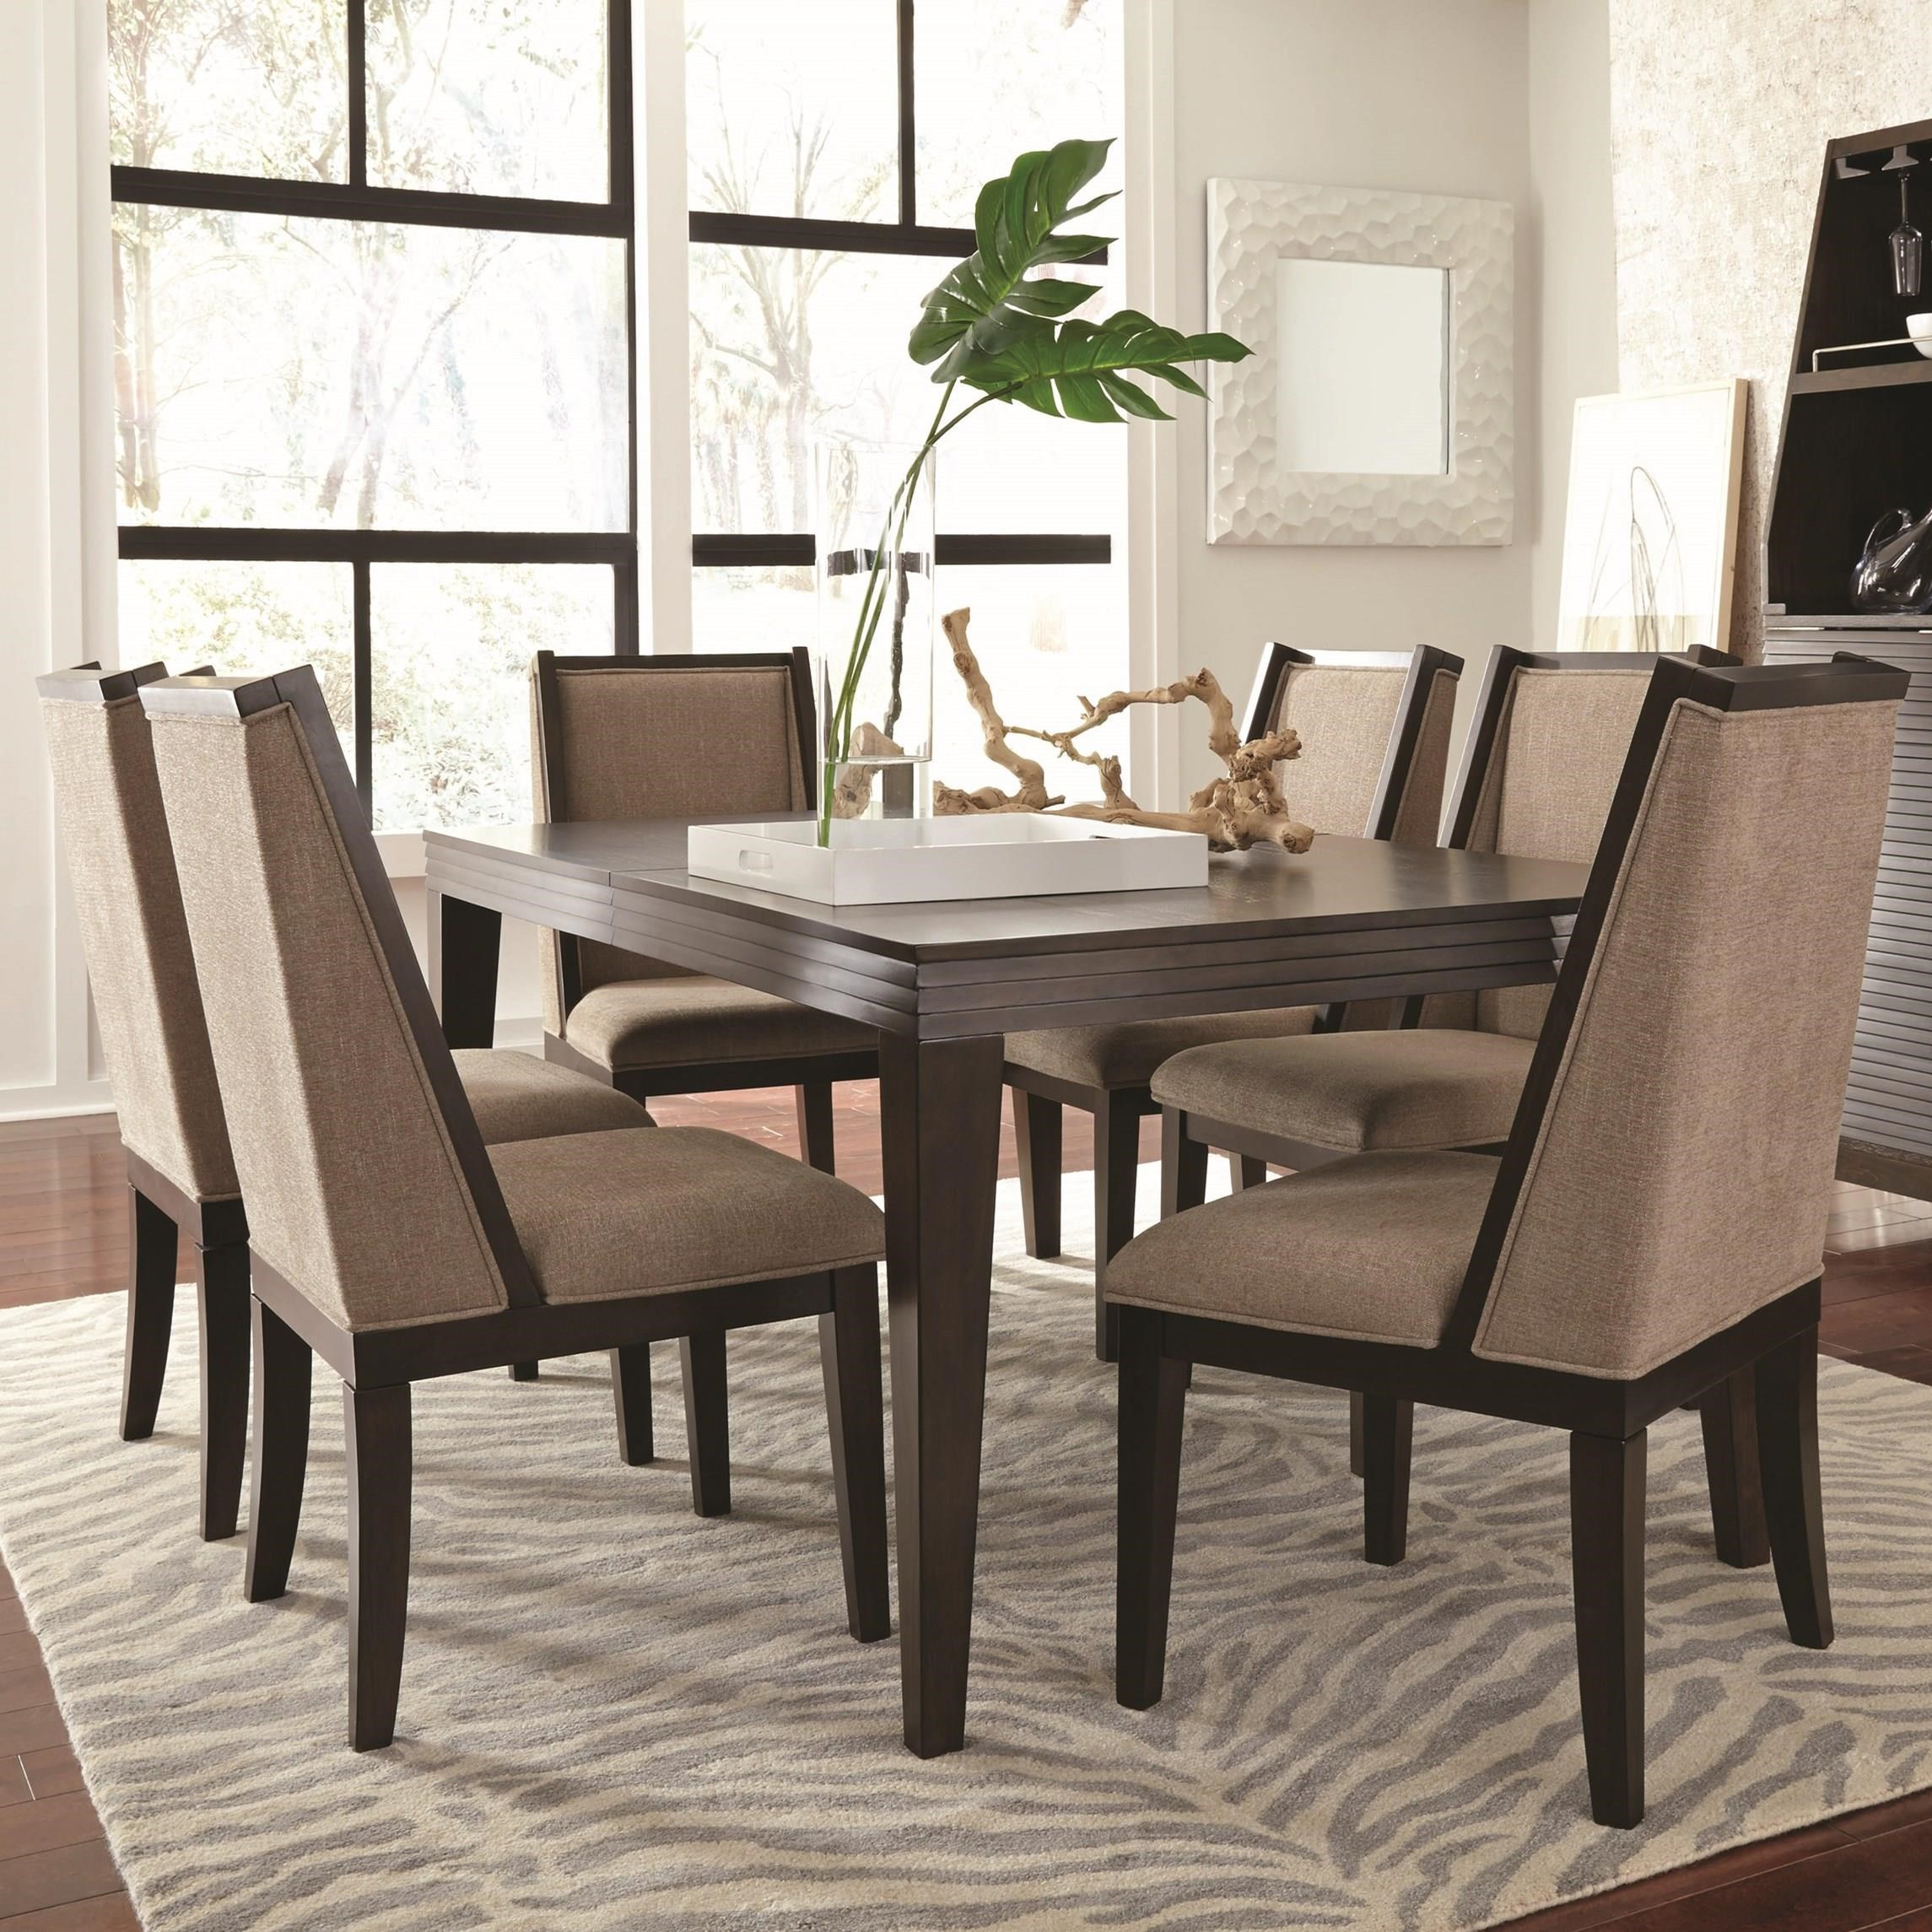 chairs furniture table setdiningcounterheight chair room bench grove tables dining set barn kona products and